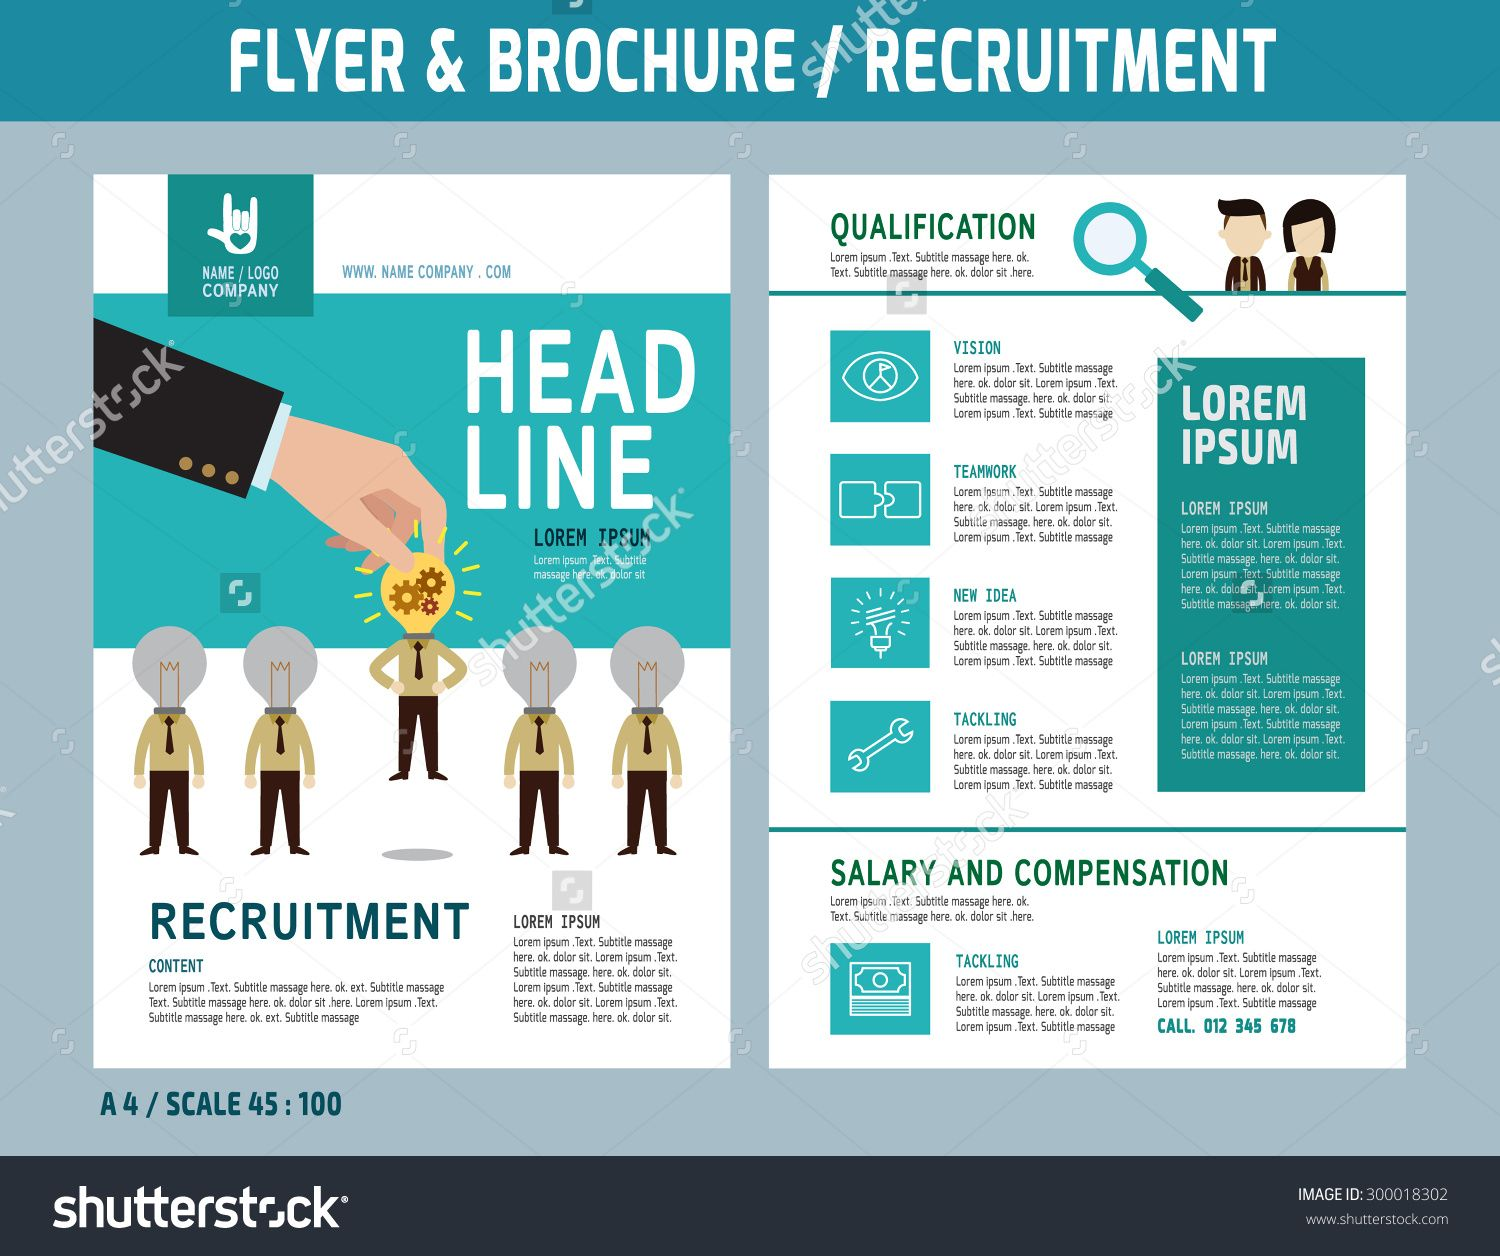 Recruitment Flyer Design Vector Template In A4 Size. Brochure And ..  Advertisement Flyer Maker